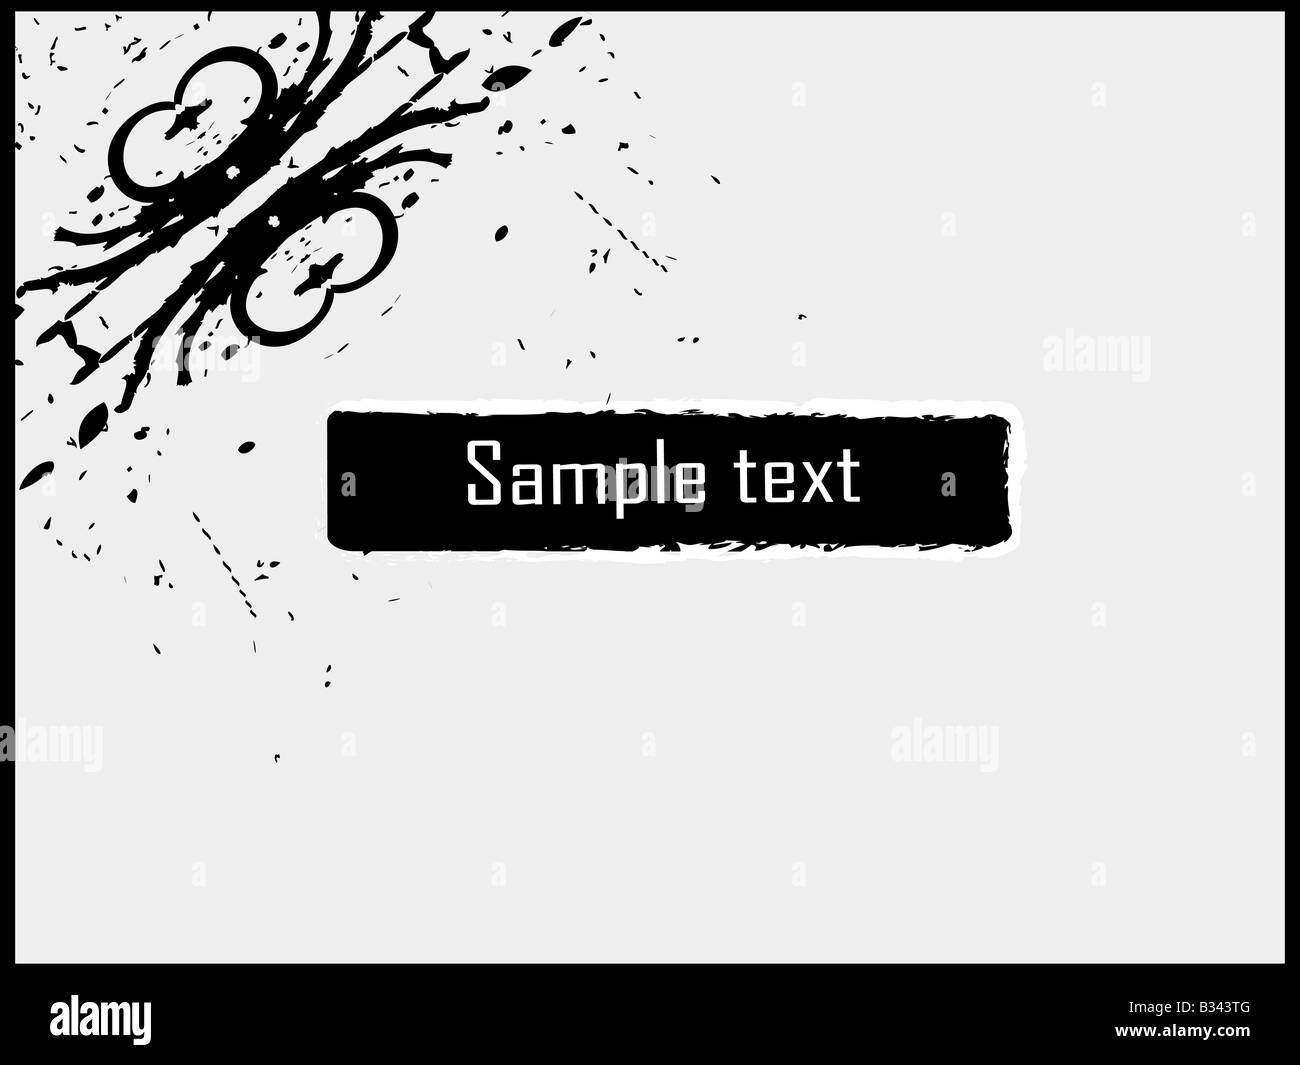 swirly design with text template stock photo 19145184 alamy